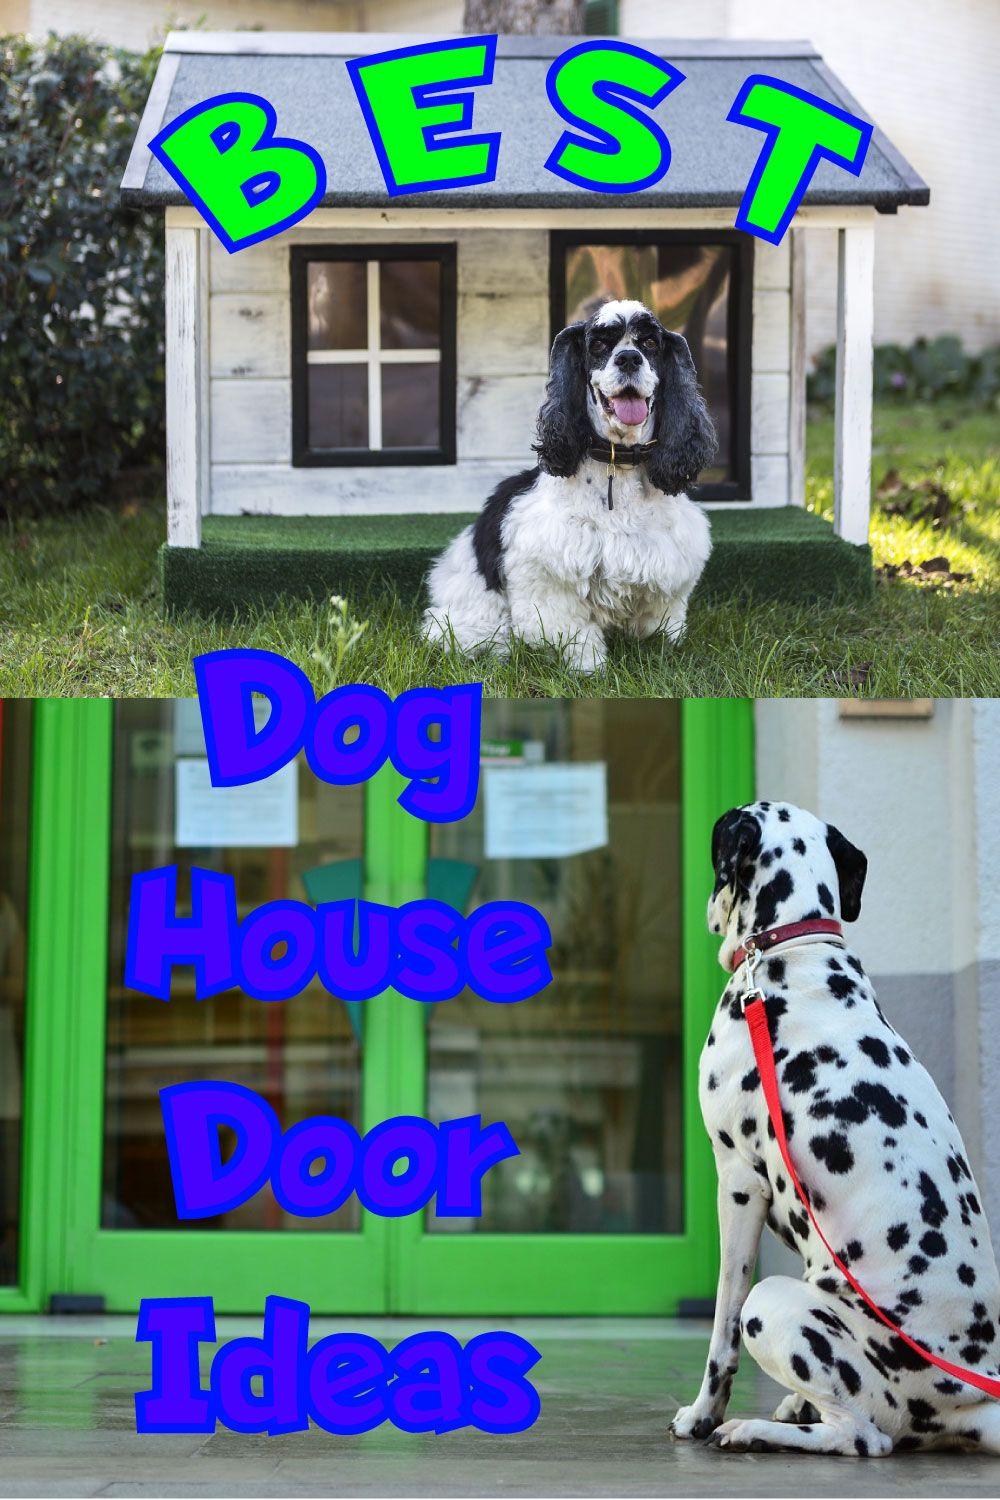 10 Best Dog House Door Ideas Cool Dog Houses House Doors Dogs